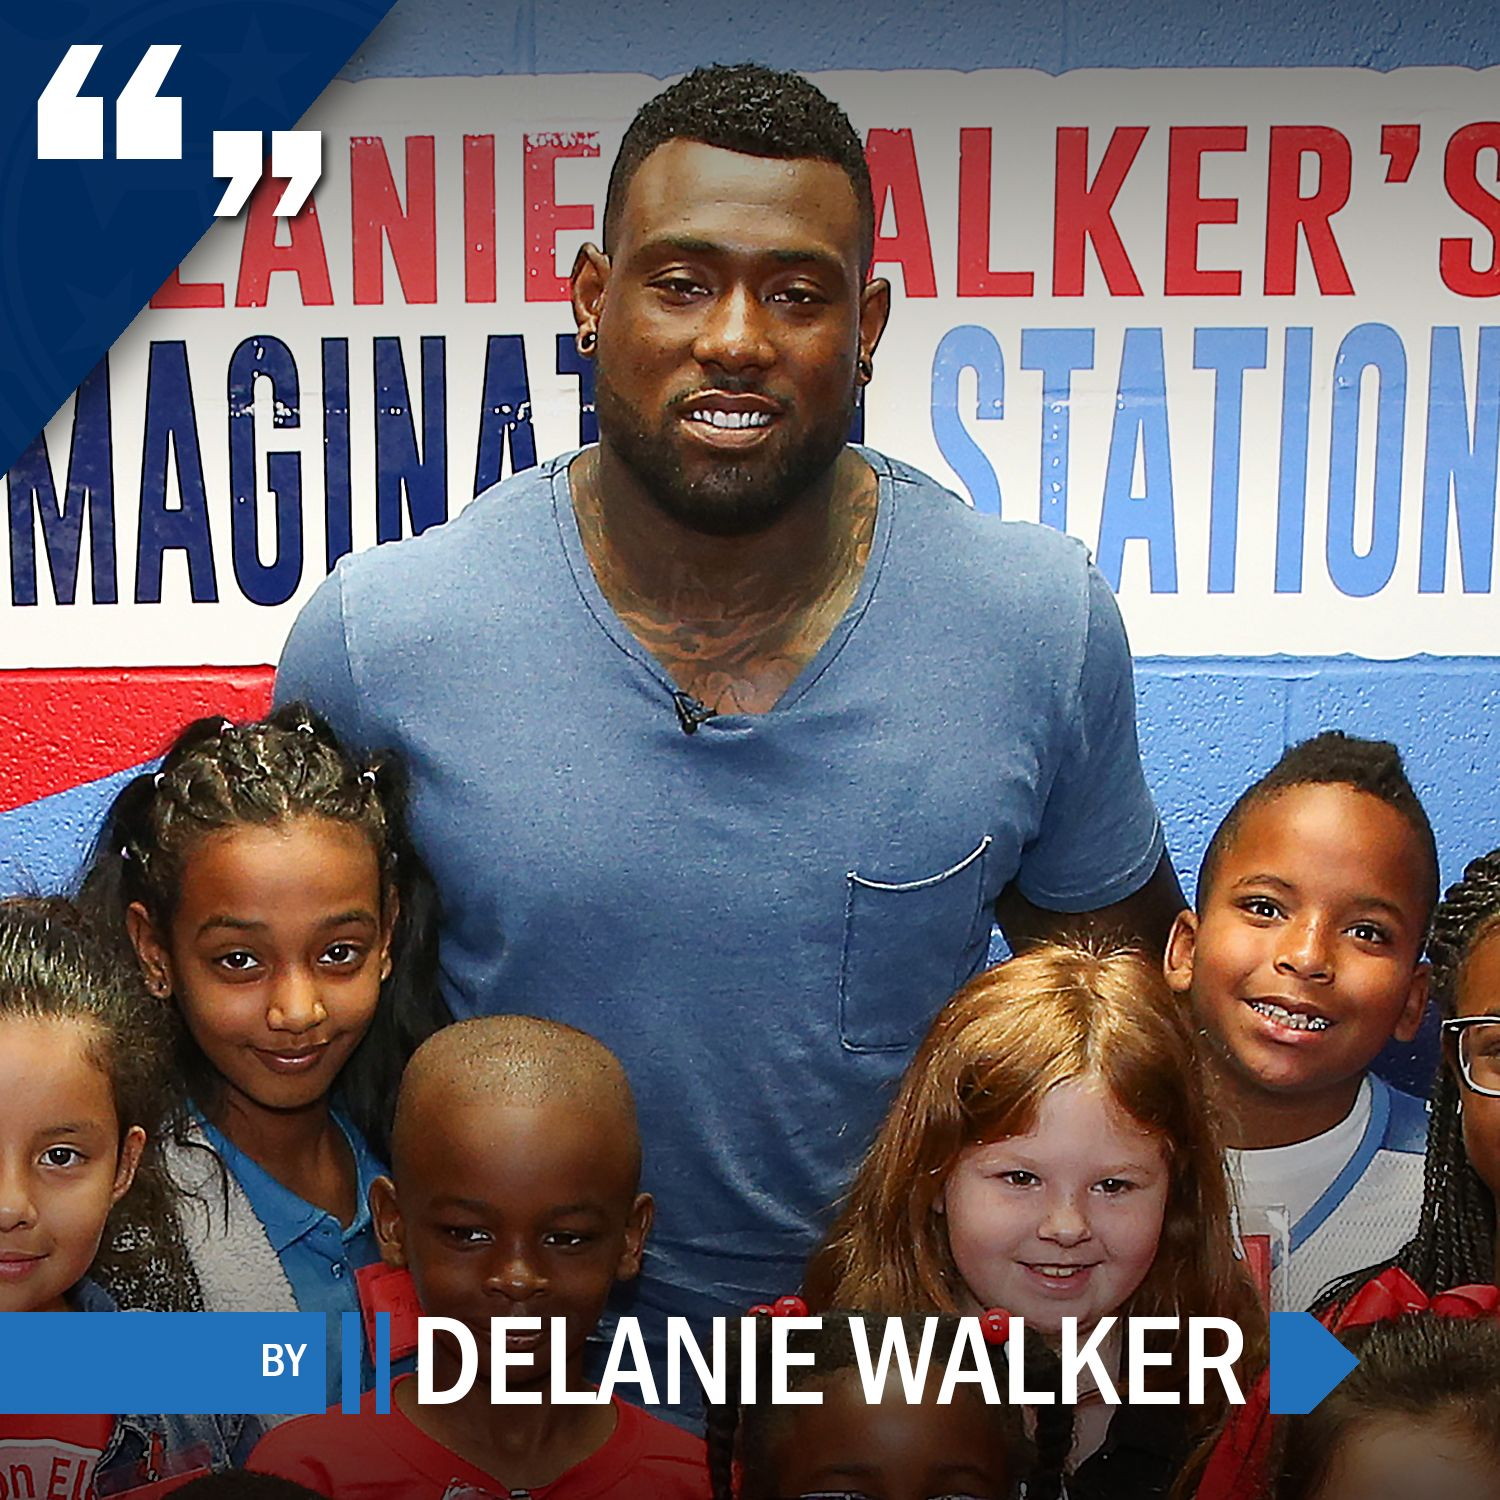 delanie-walker-players-1500